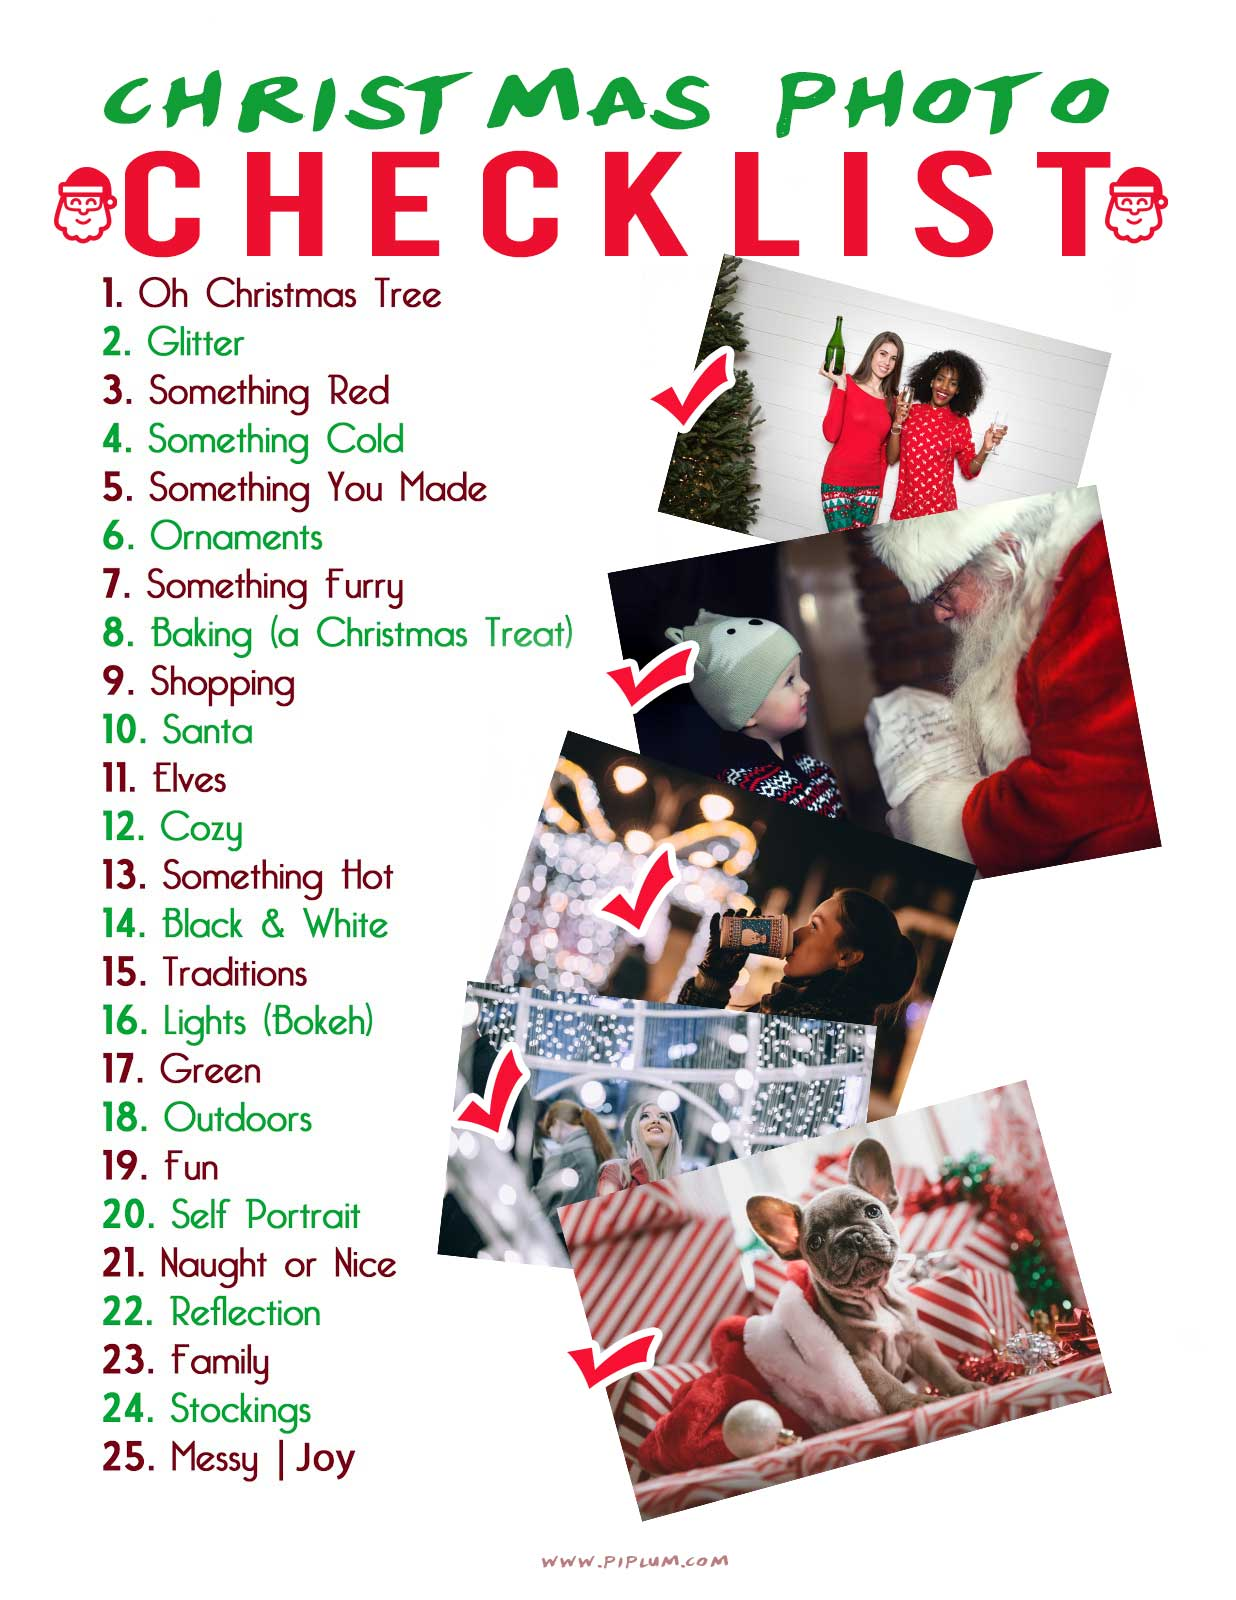 christmas-photo-checklist-ideas-poster